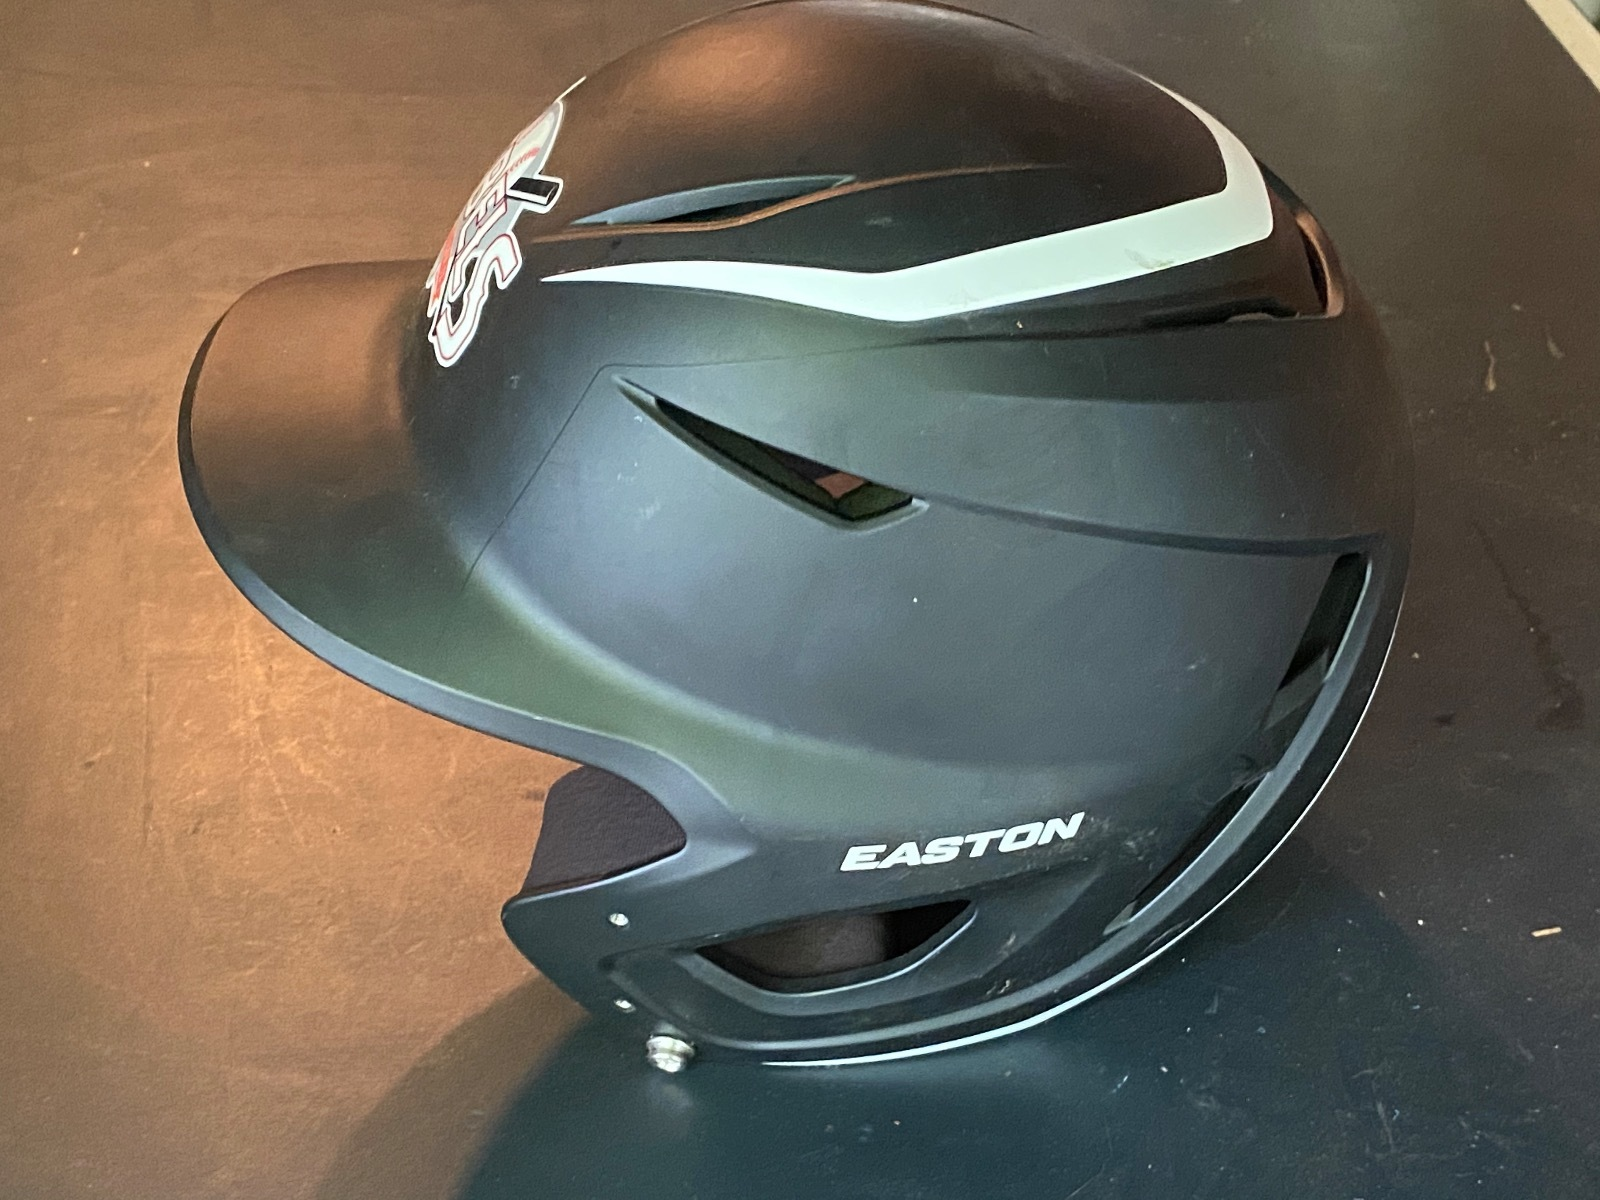 Easton Batting Helmet for Rebels